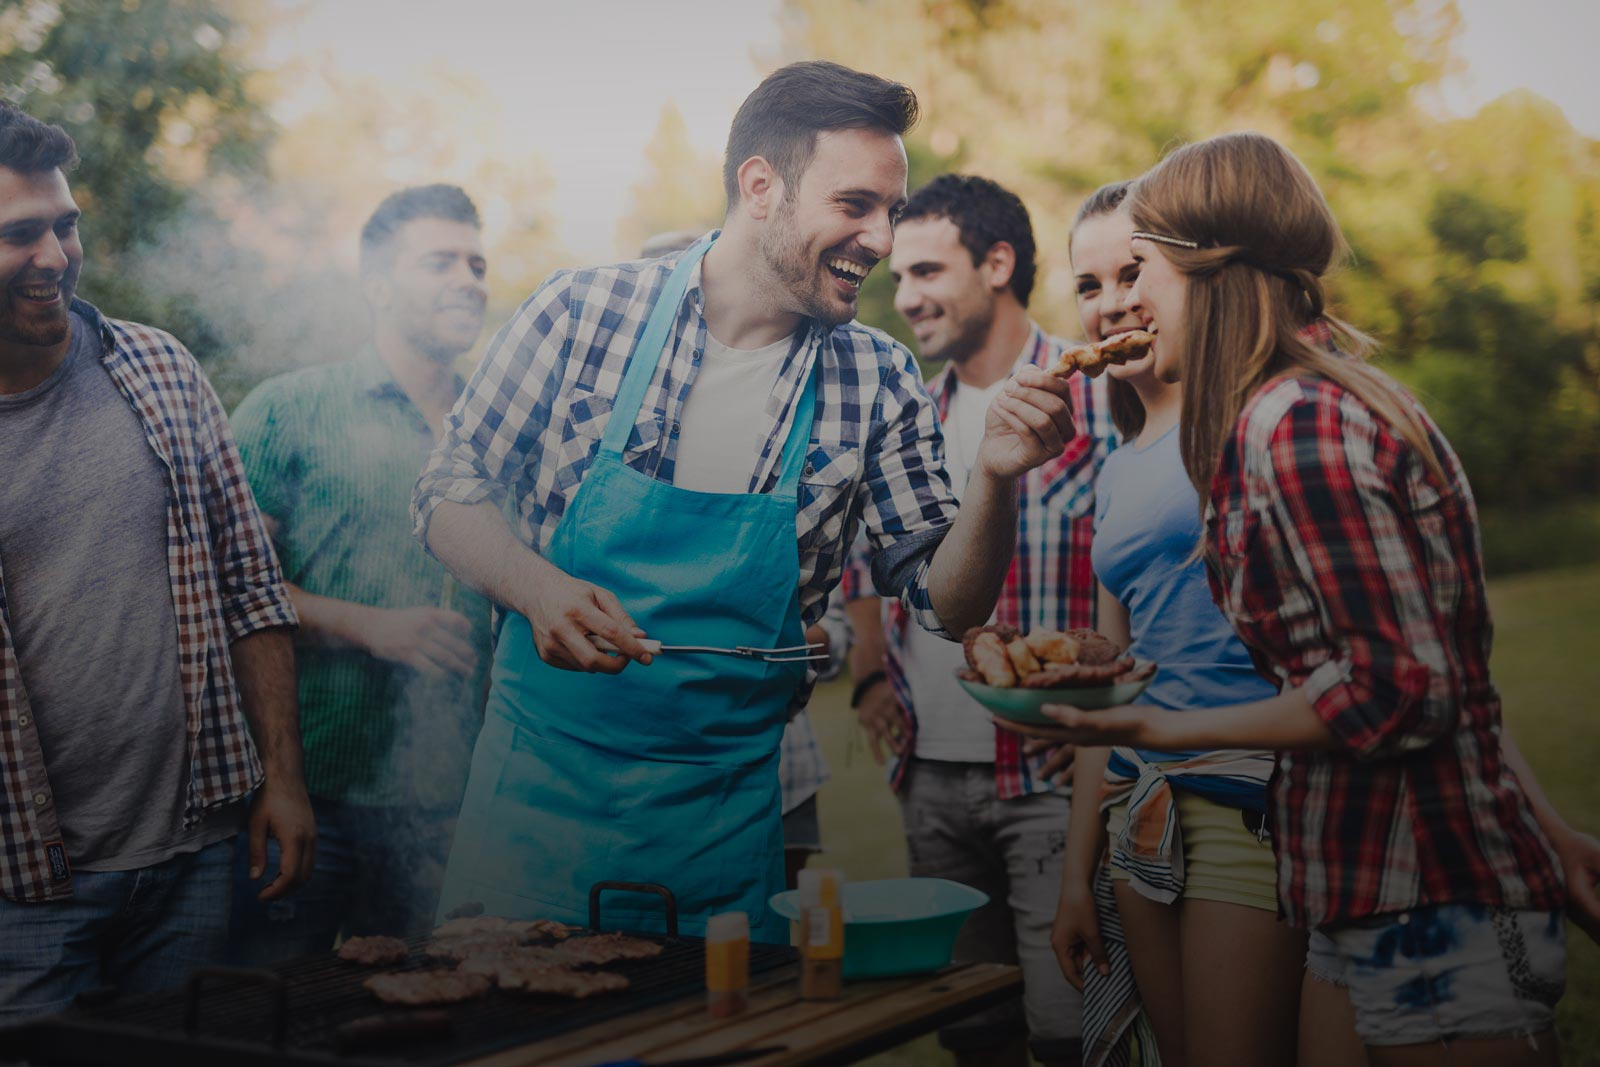 image of a group of people at a picnic barbecue